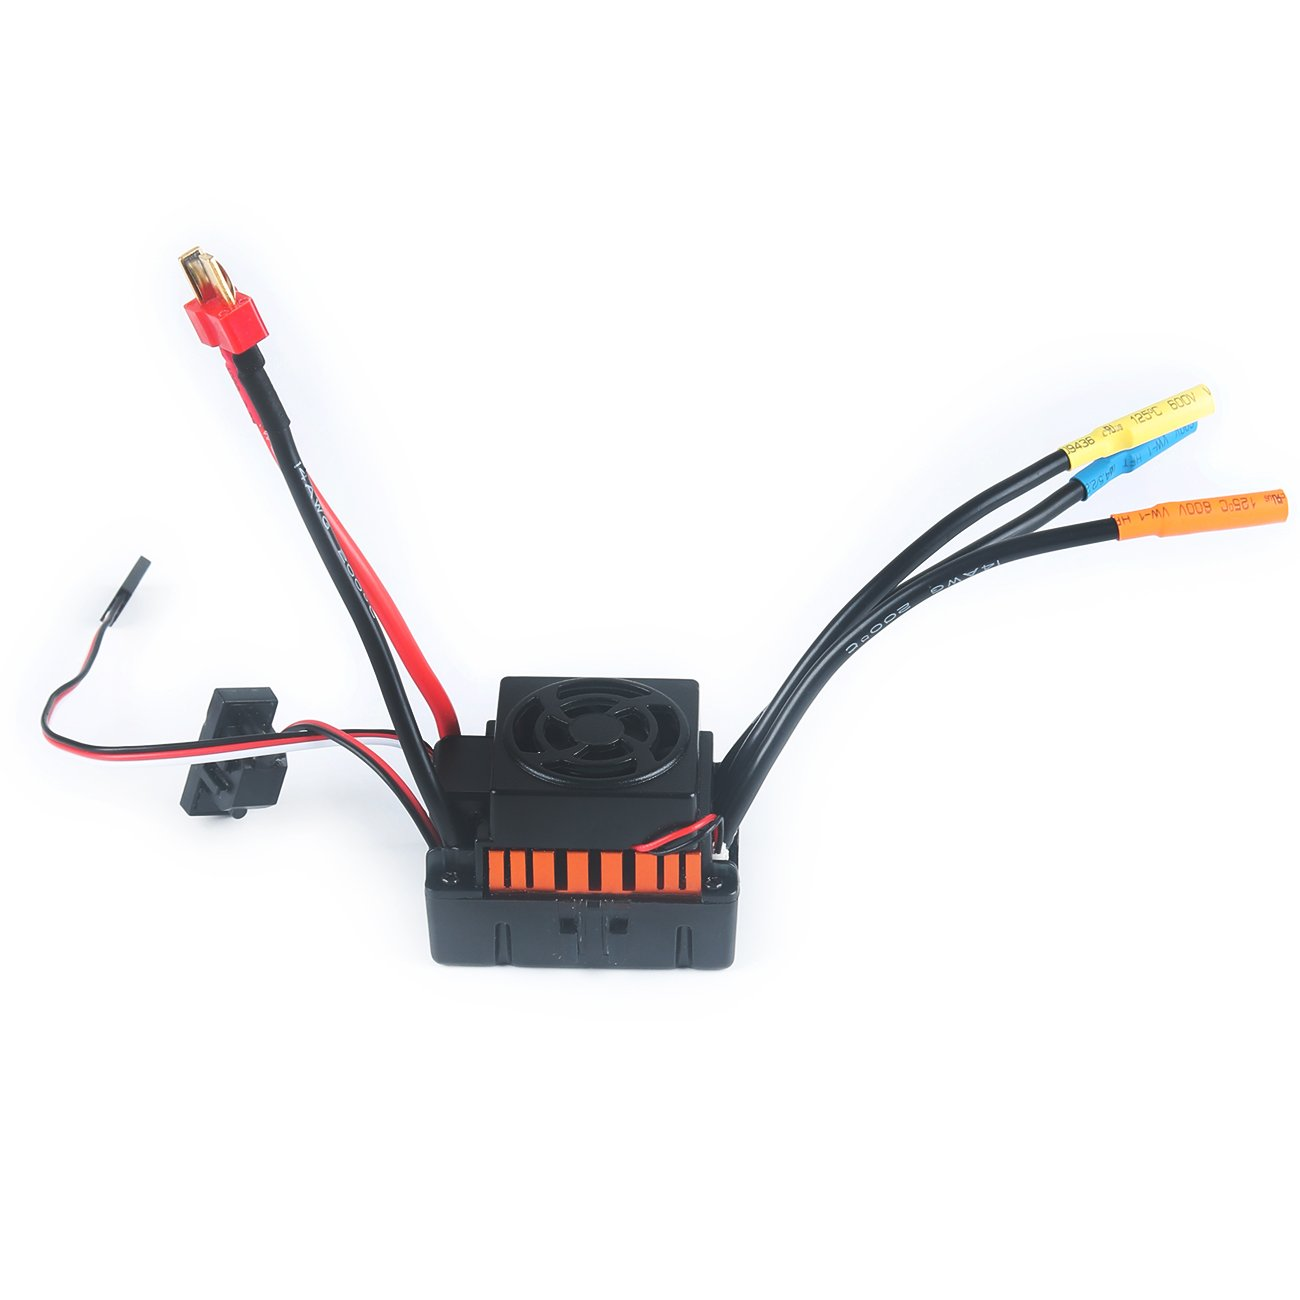 Crazepony-UK F540 3300KV Brushless Motor Waterproof with 45A ESC Electronic Speed Control Combo Set 3.175mm Shaft for 1//10 RC Car Truck by